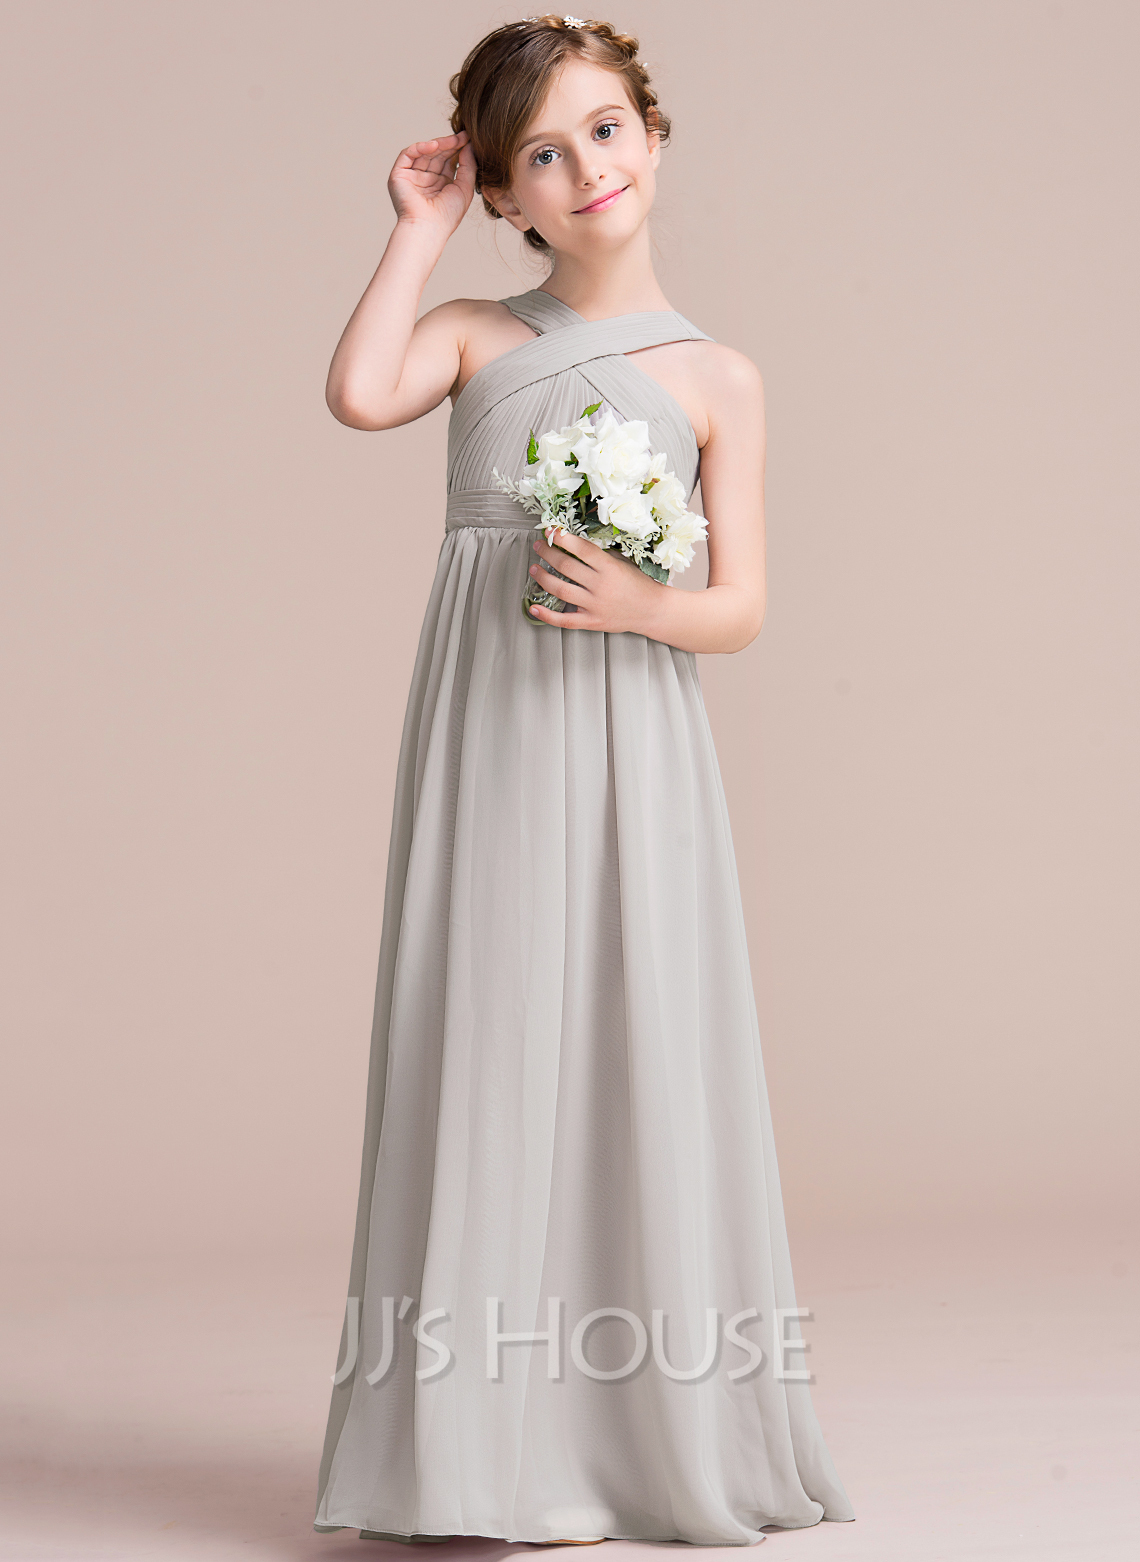 A-Line Floor-length Flower Girl Dress - Chiffon Sleeveless V-neck With Bow(s)